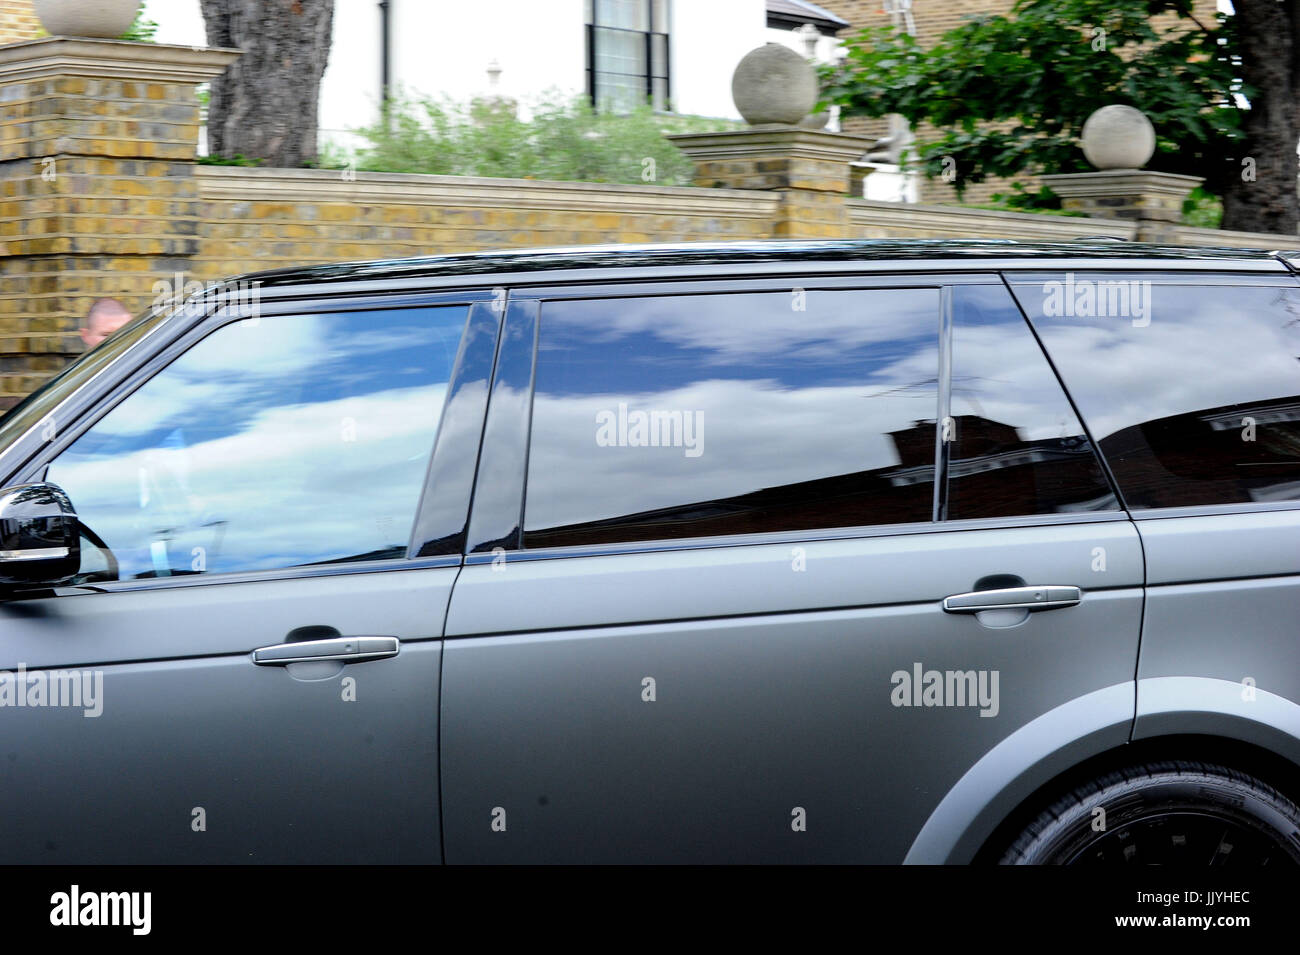 London, UK. 20th July, 2017. Petra Stunt Personalised Plate Car Returning Home in Chelsea After Court Hearing at - Stock Image